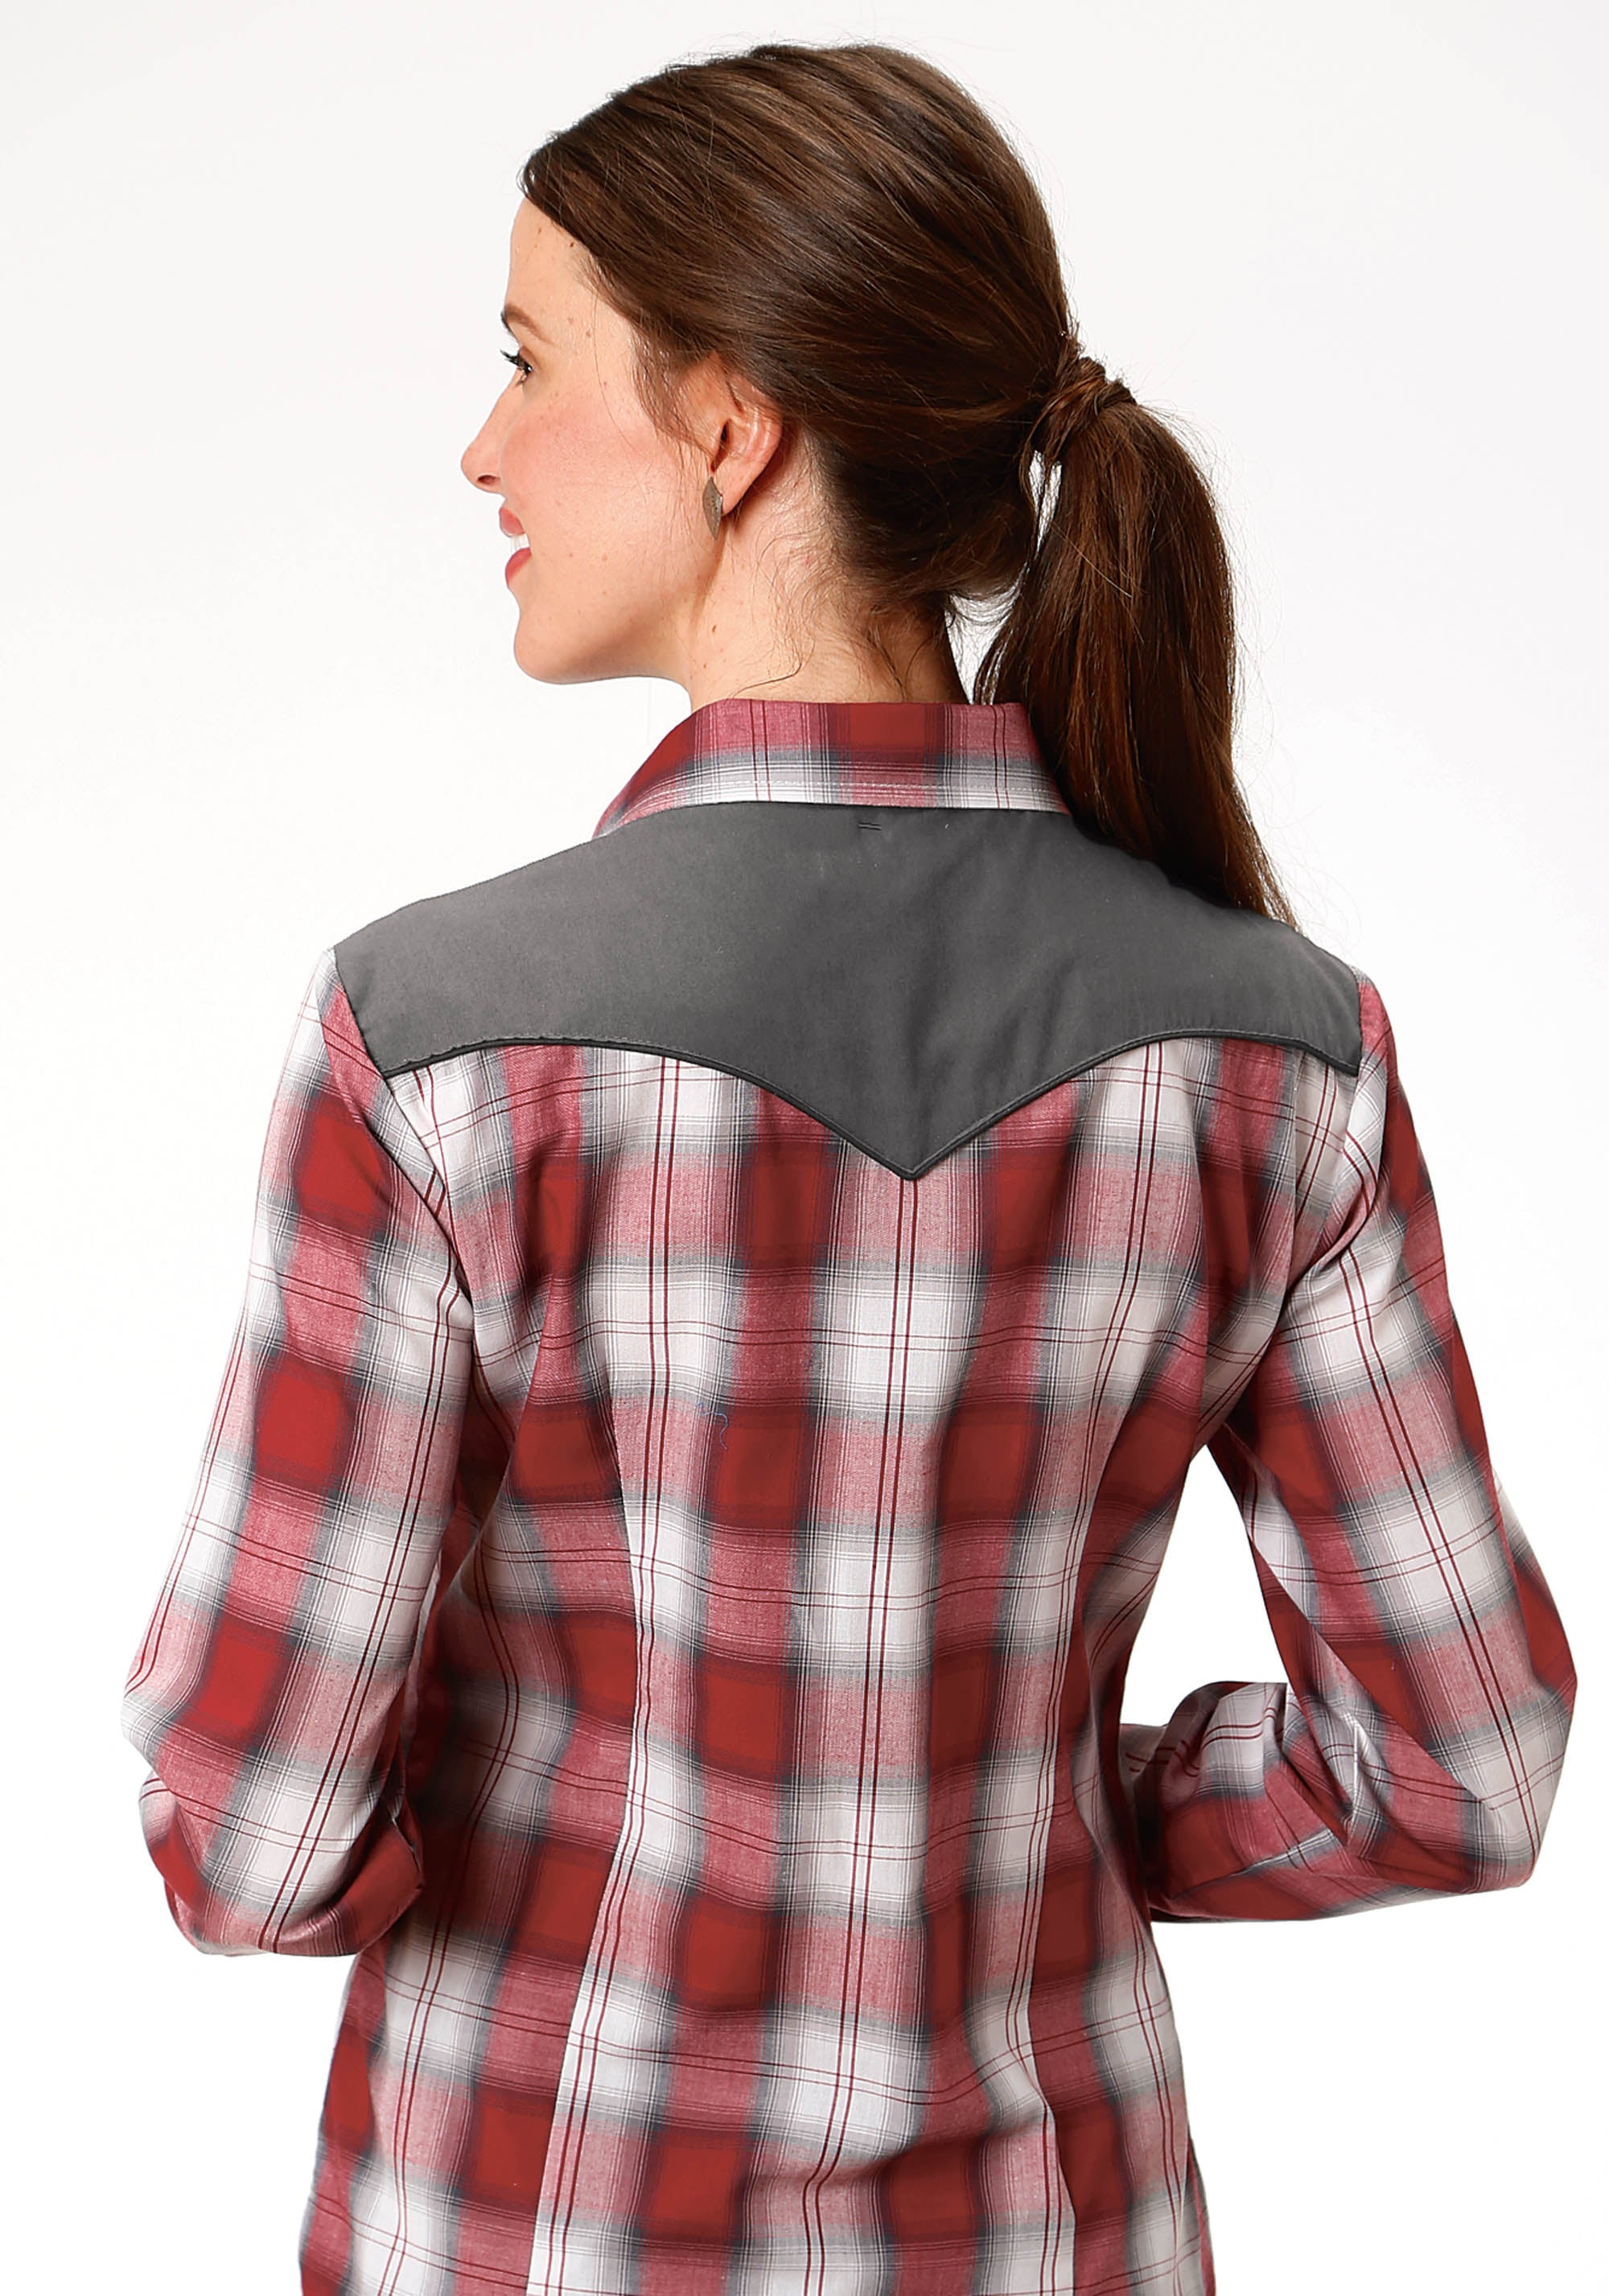 ROPER WOMENS RED 9910 RED, WHITE & GREY PLAID KARMAN SPECIAL STYLES LONG SLEEVE